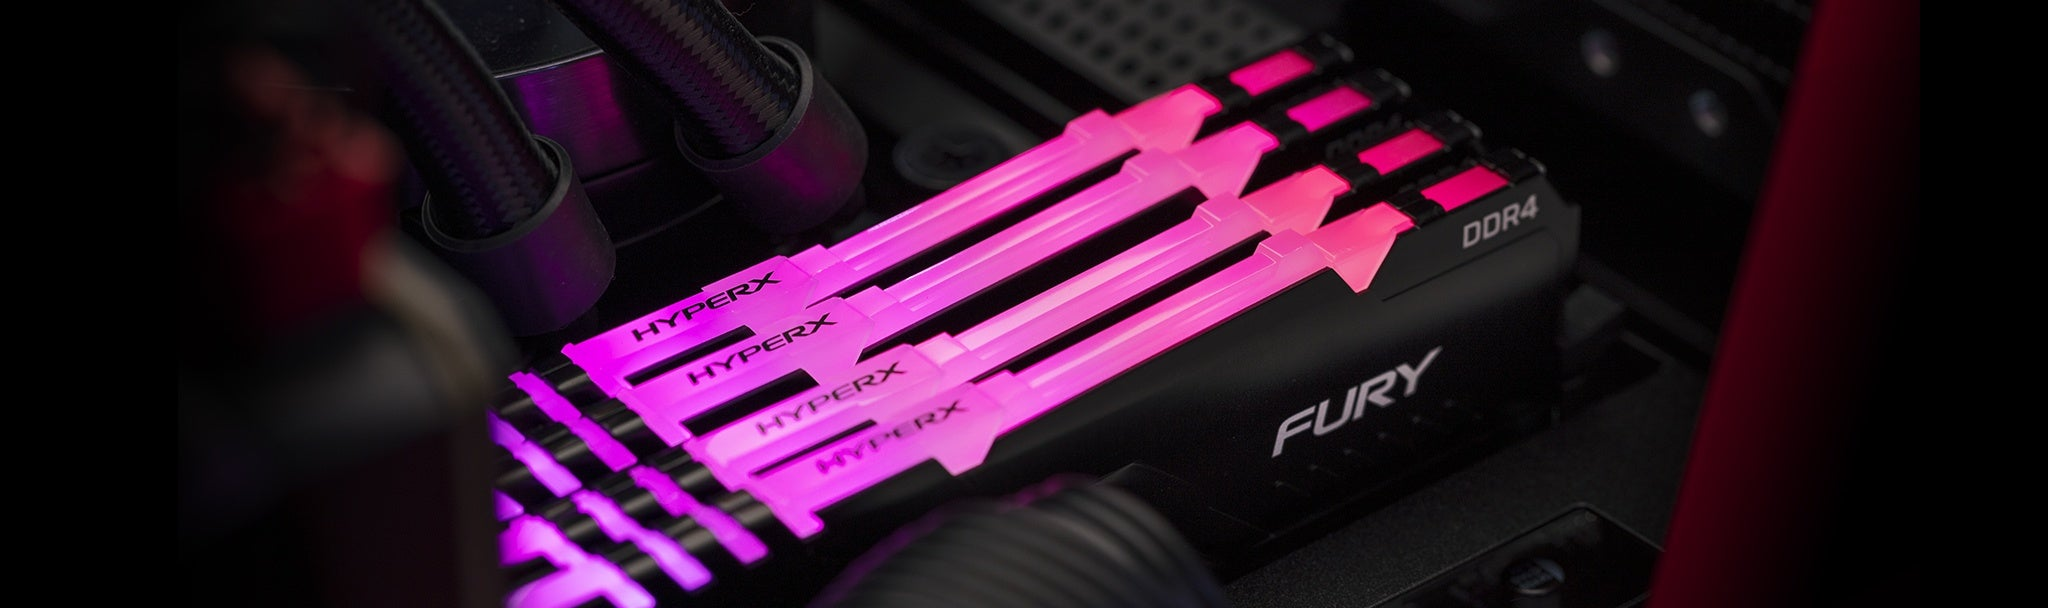 HyperX announces FURY DDR4 RAM, and it's coming to Alienware's new Aurora R9 PCs